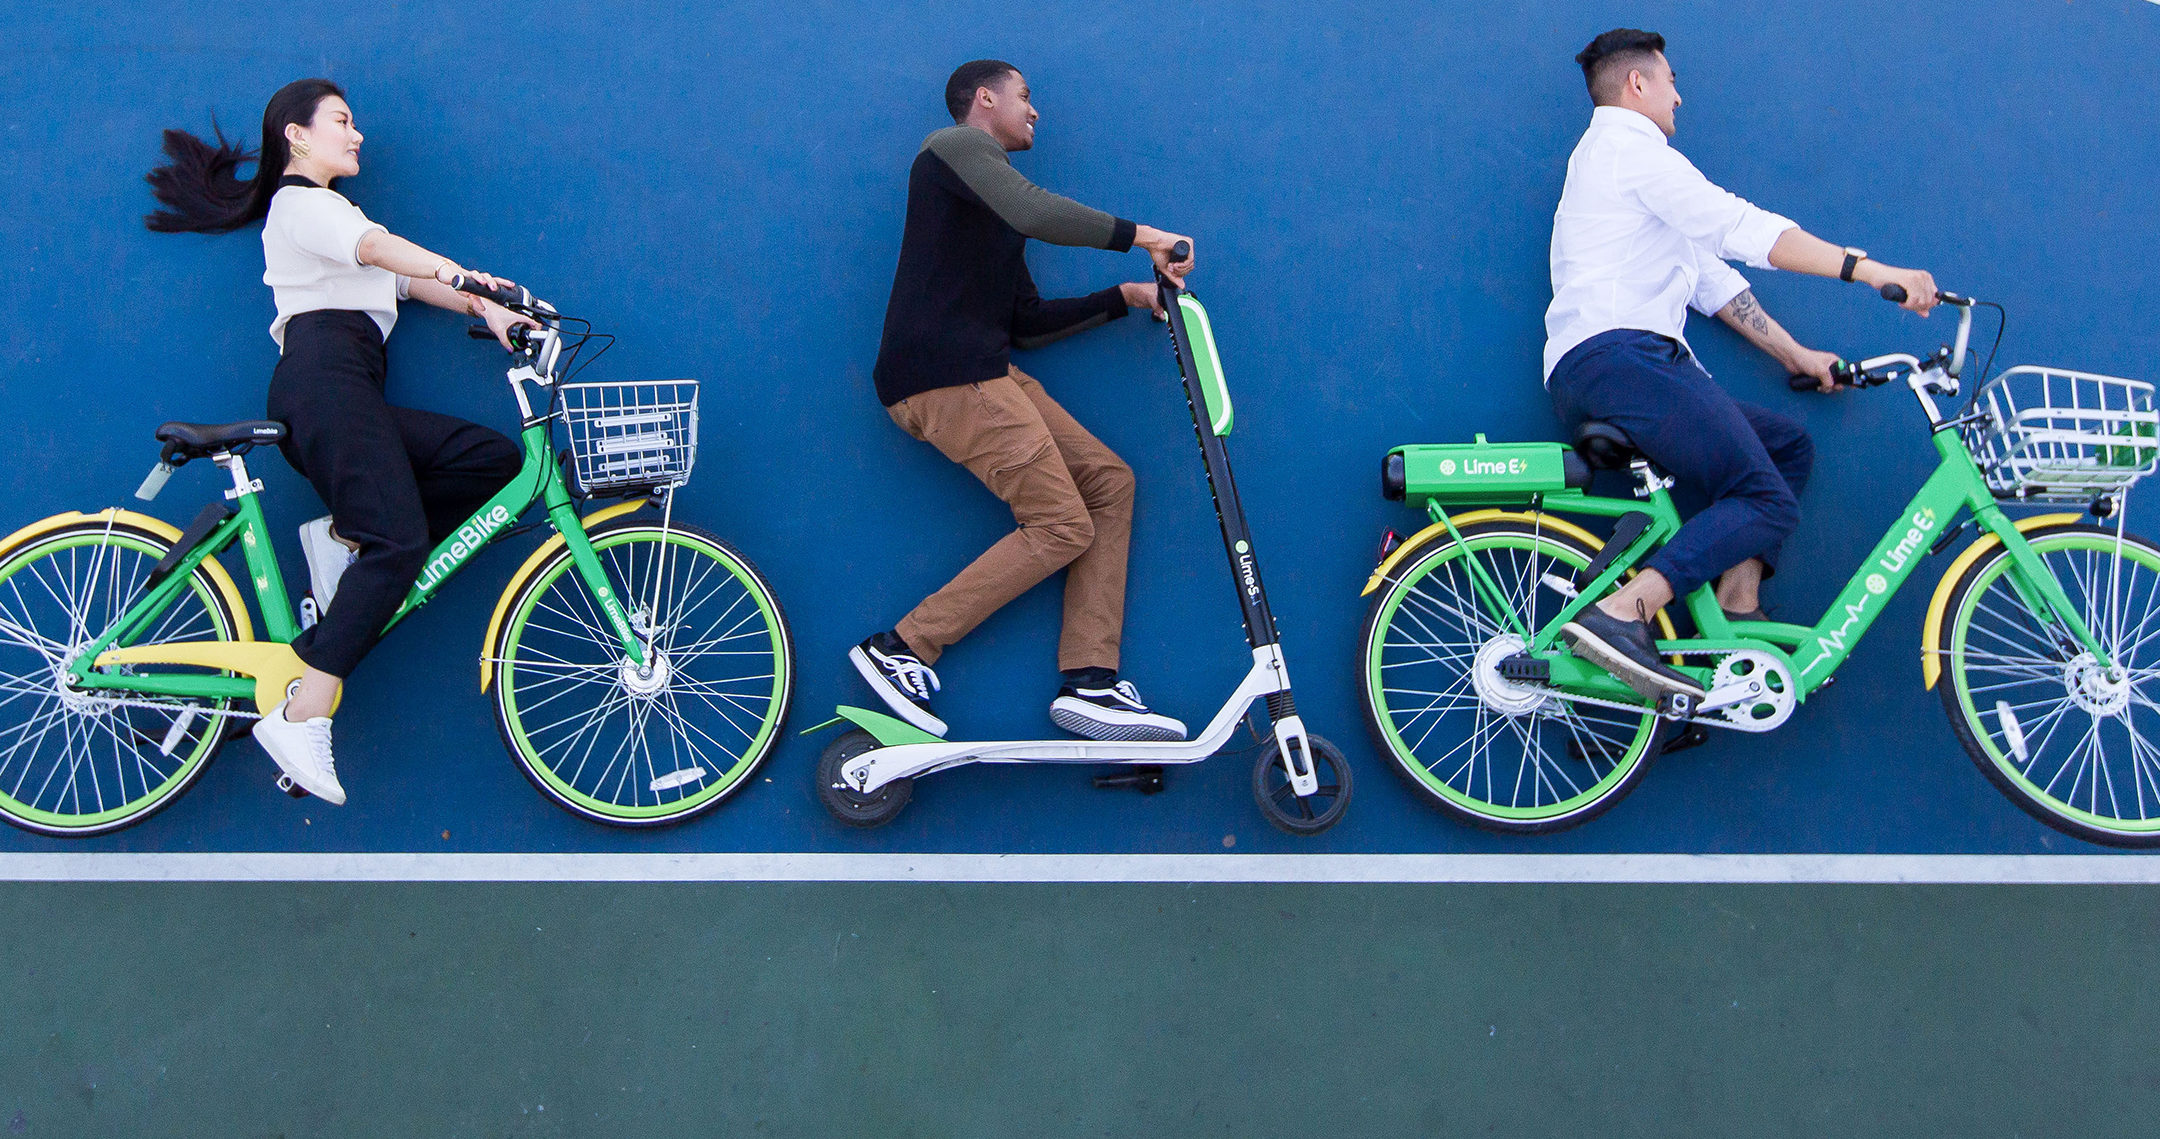 Limebike Raises $70M B+ Round As Bike Sharing Competition Intensifies